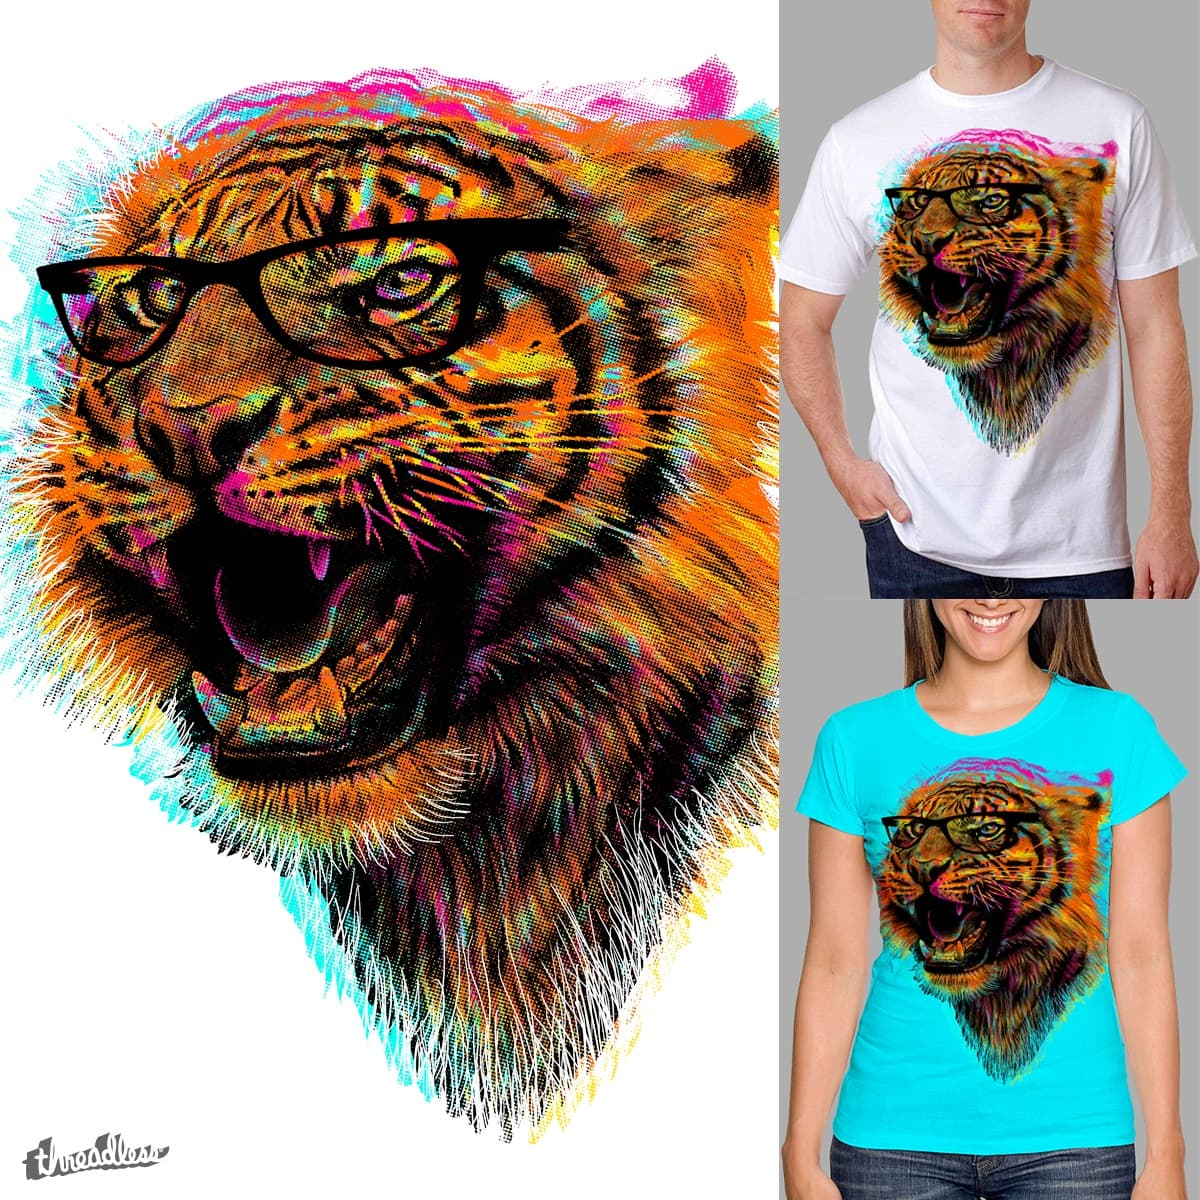 Cool Tiger by clingcling on Threadless